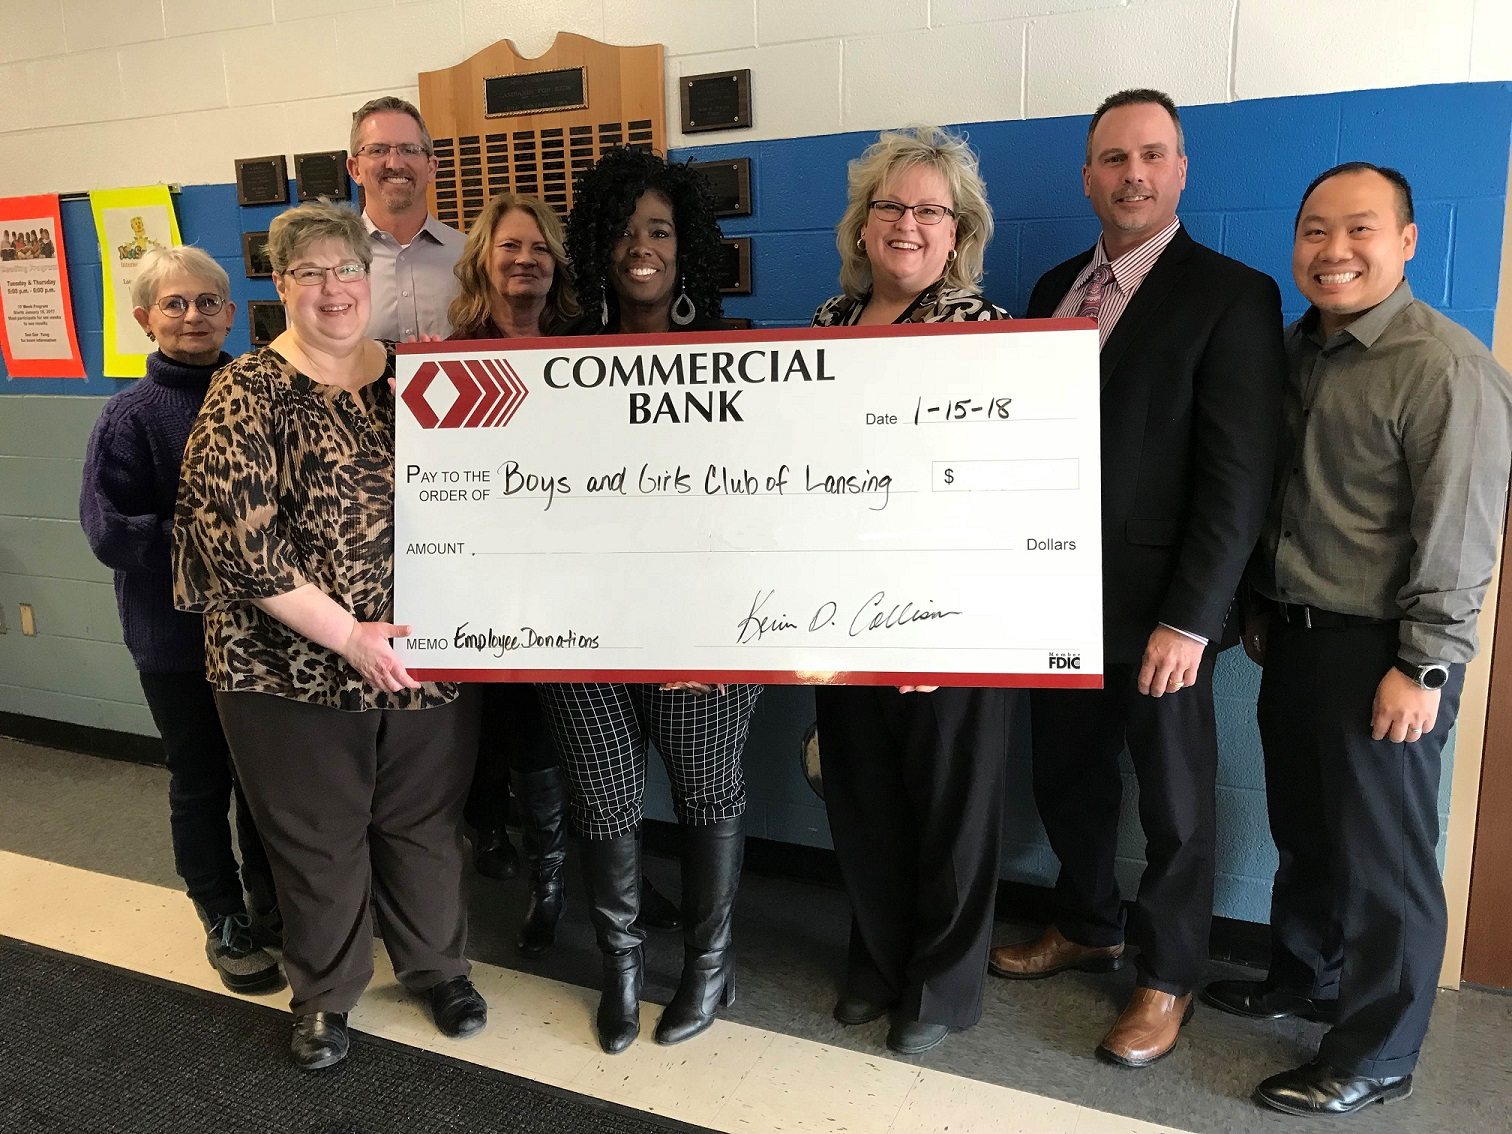 Employees holding a check from Commercial Bank to Boys and Girls Club of Lansing, Michigan.